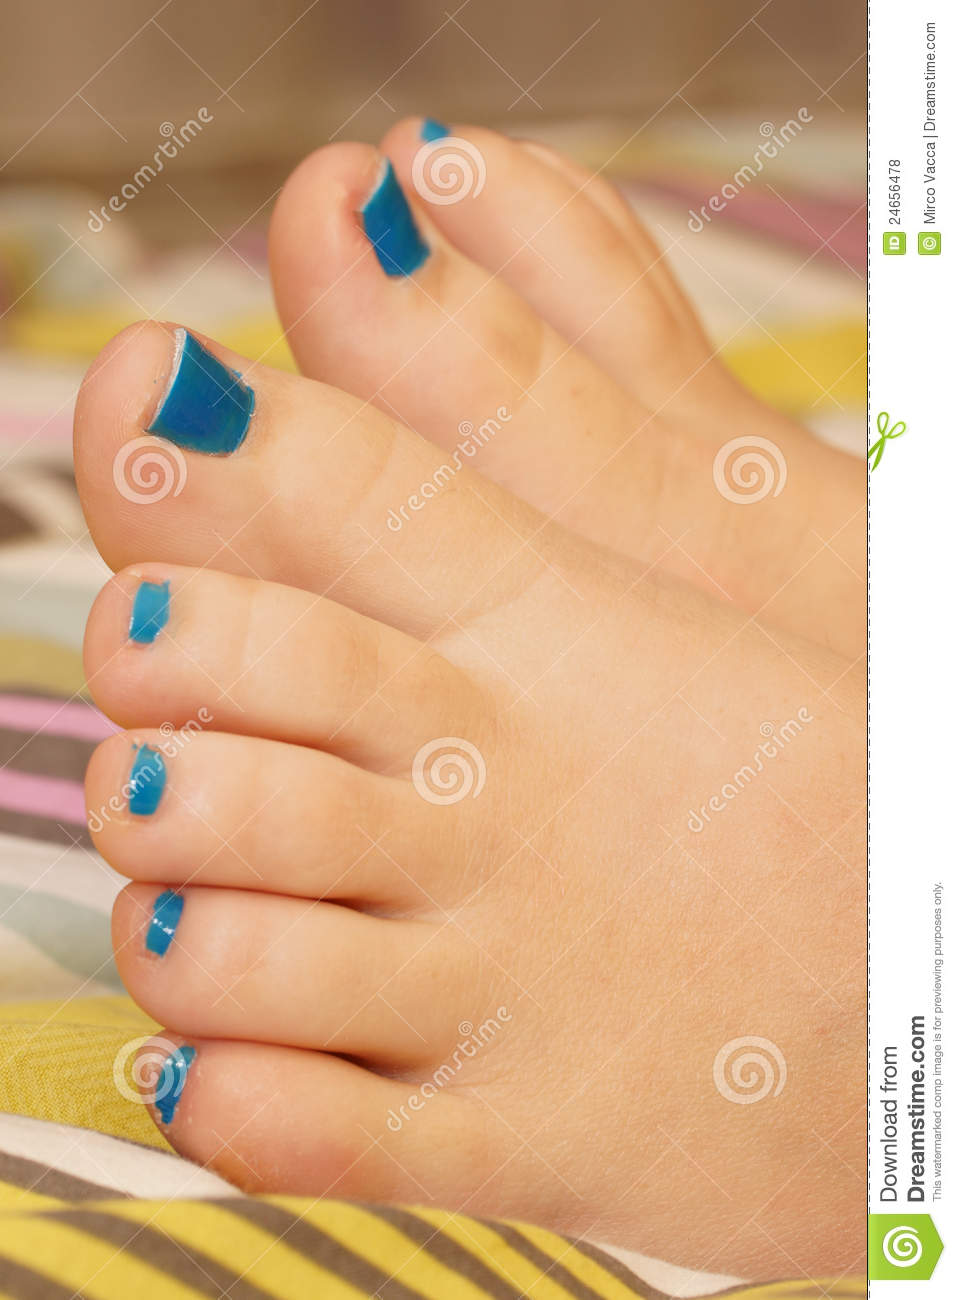 Painted short toenails stock photo. Image of painted - 24656478